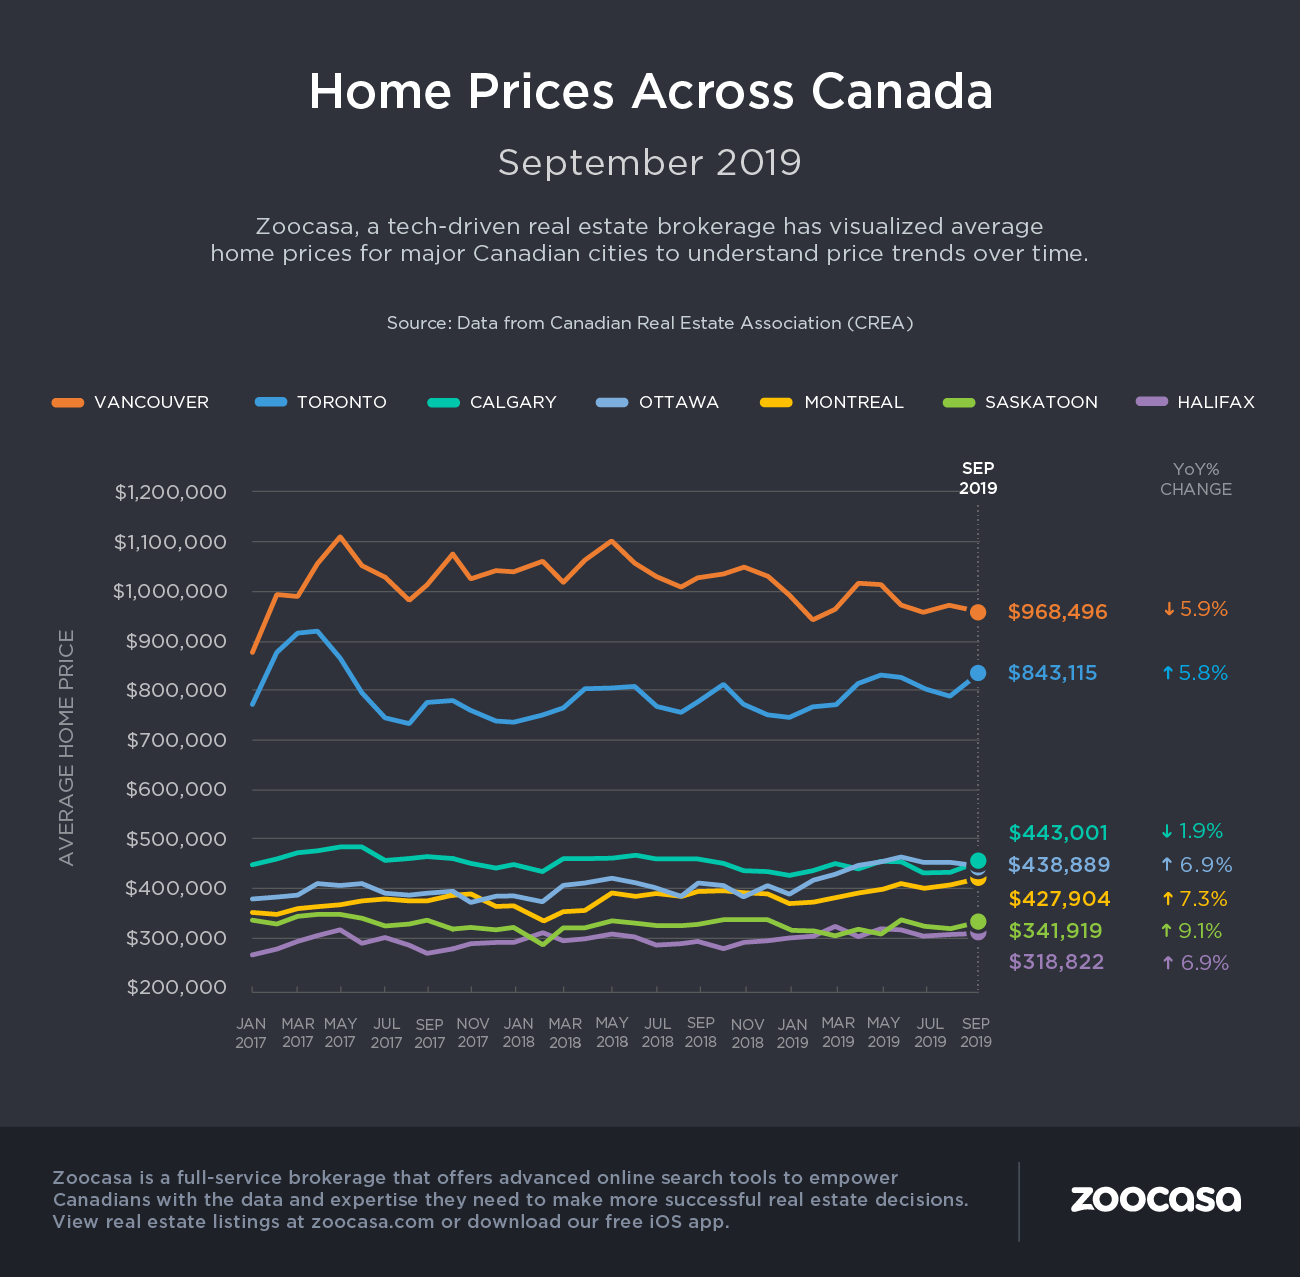 crea home prices for canadian cities